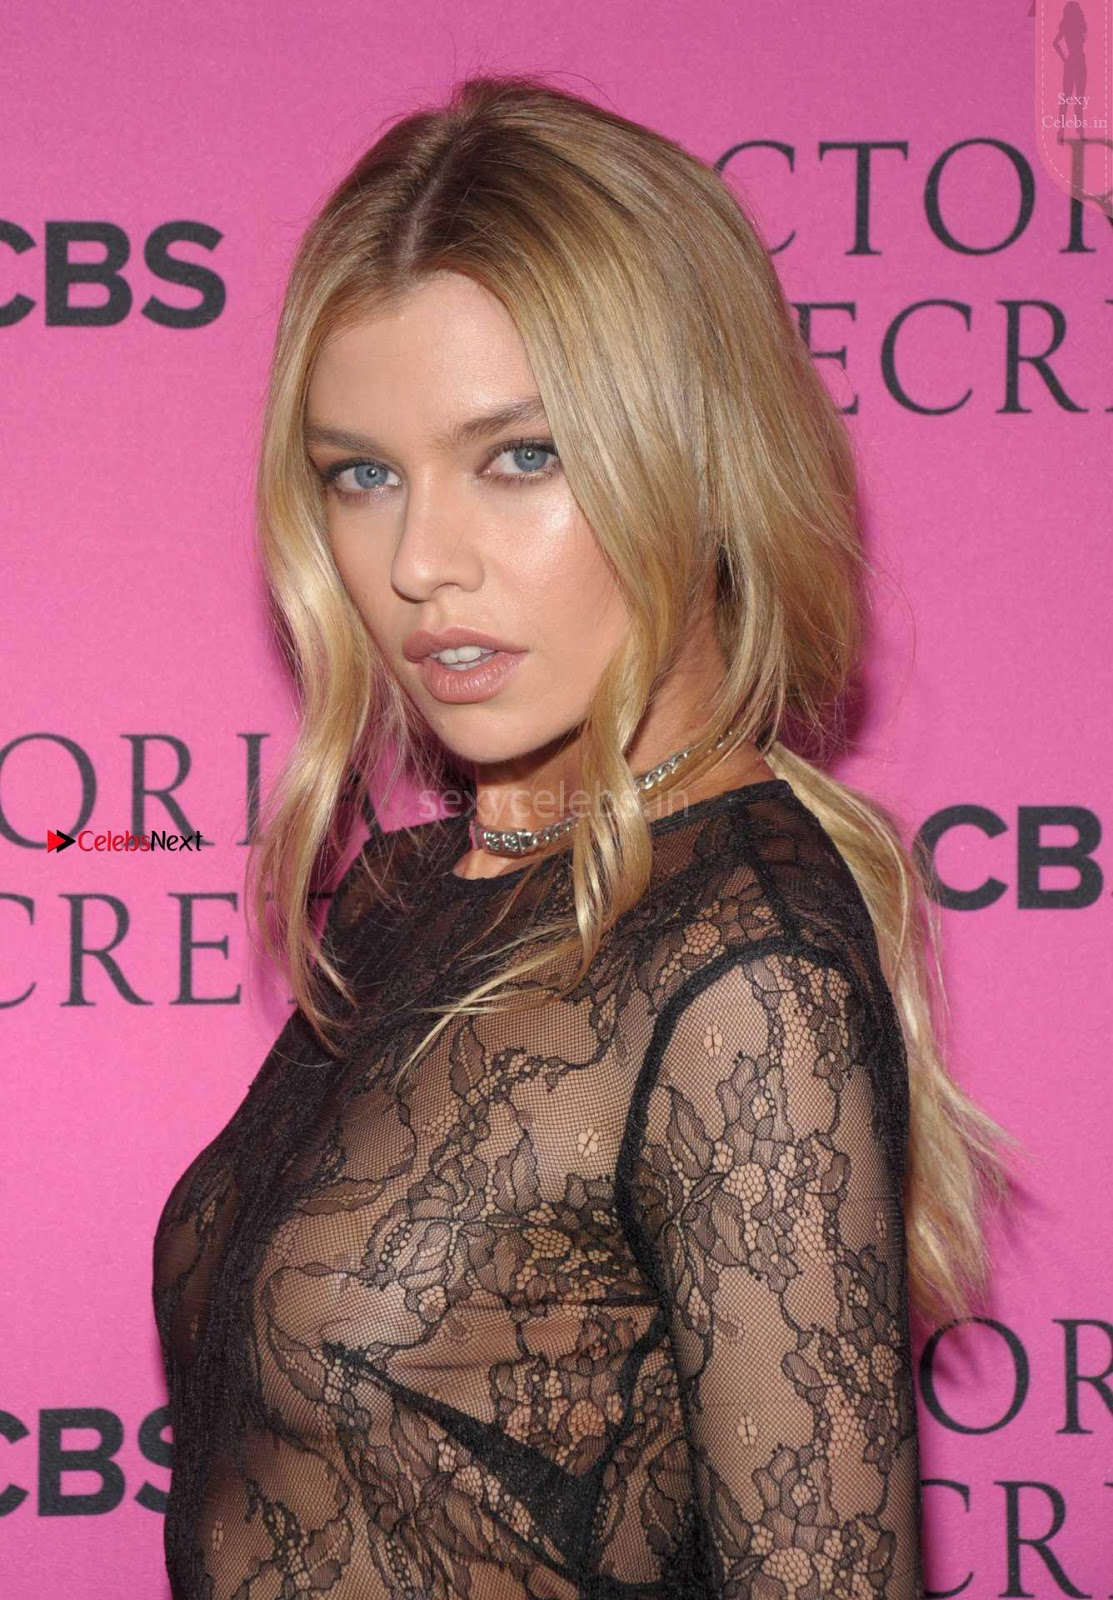 Stella Maxwell in Full Transparent Skin Tight Gown with Nipple Pasties Sexy Slim Young Actress Cleavages Tits Ass